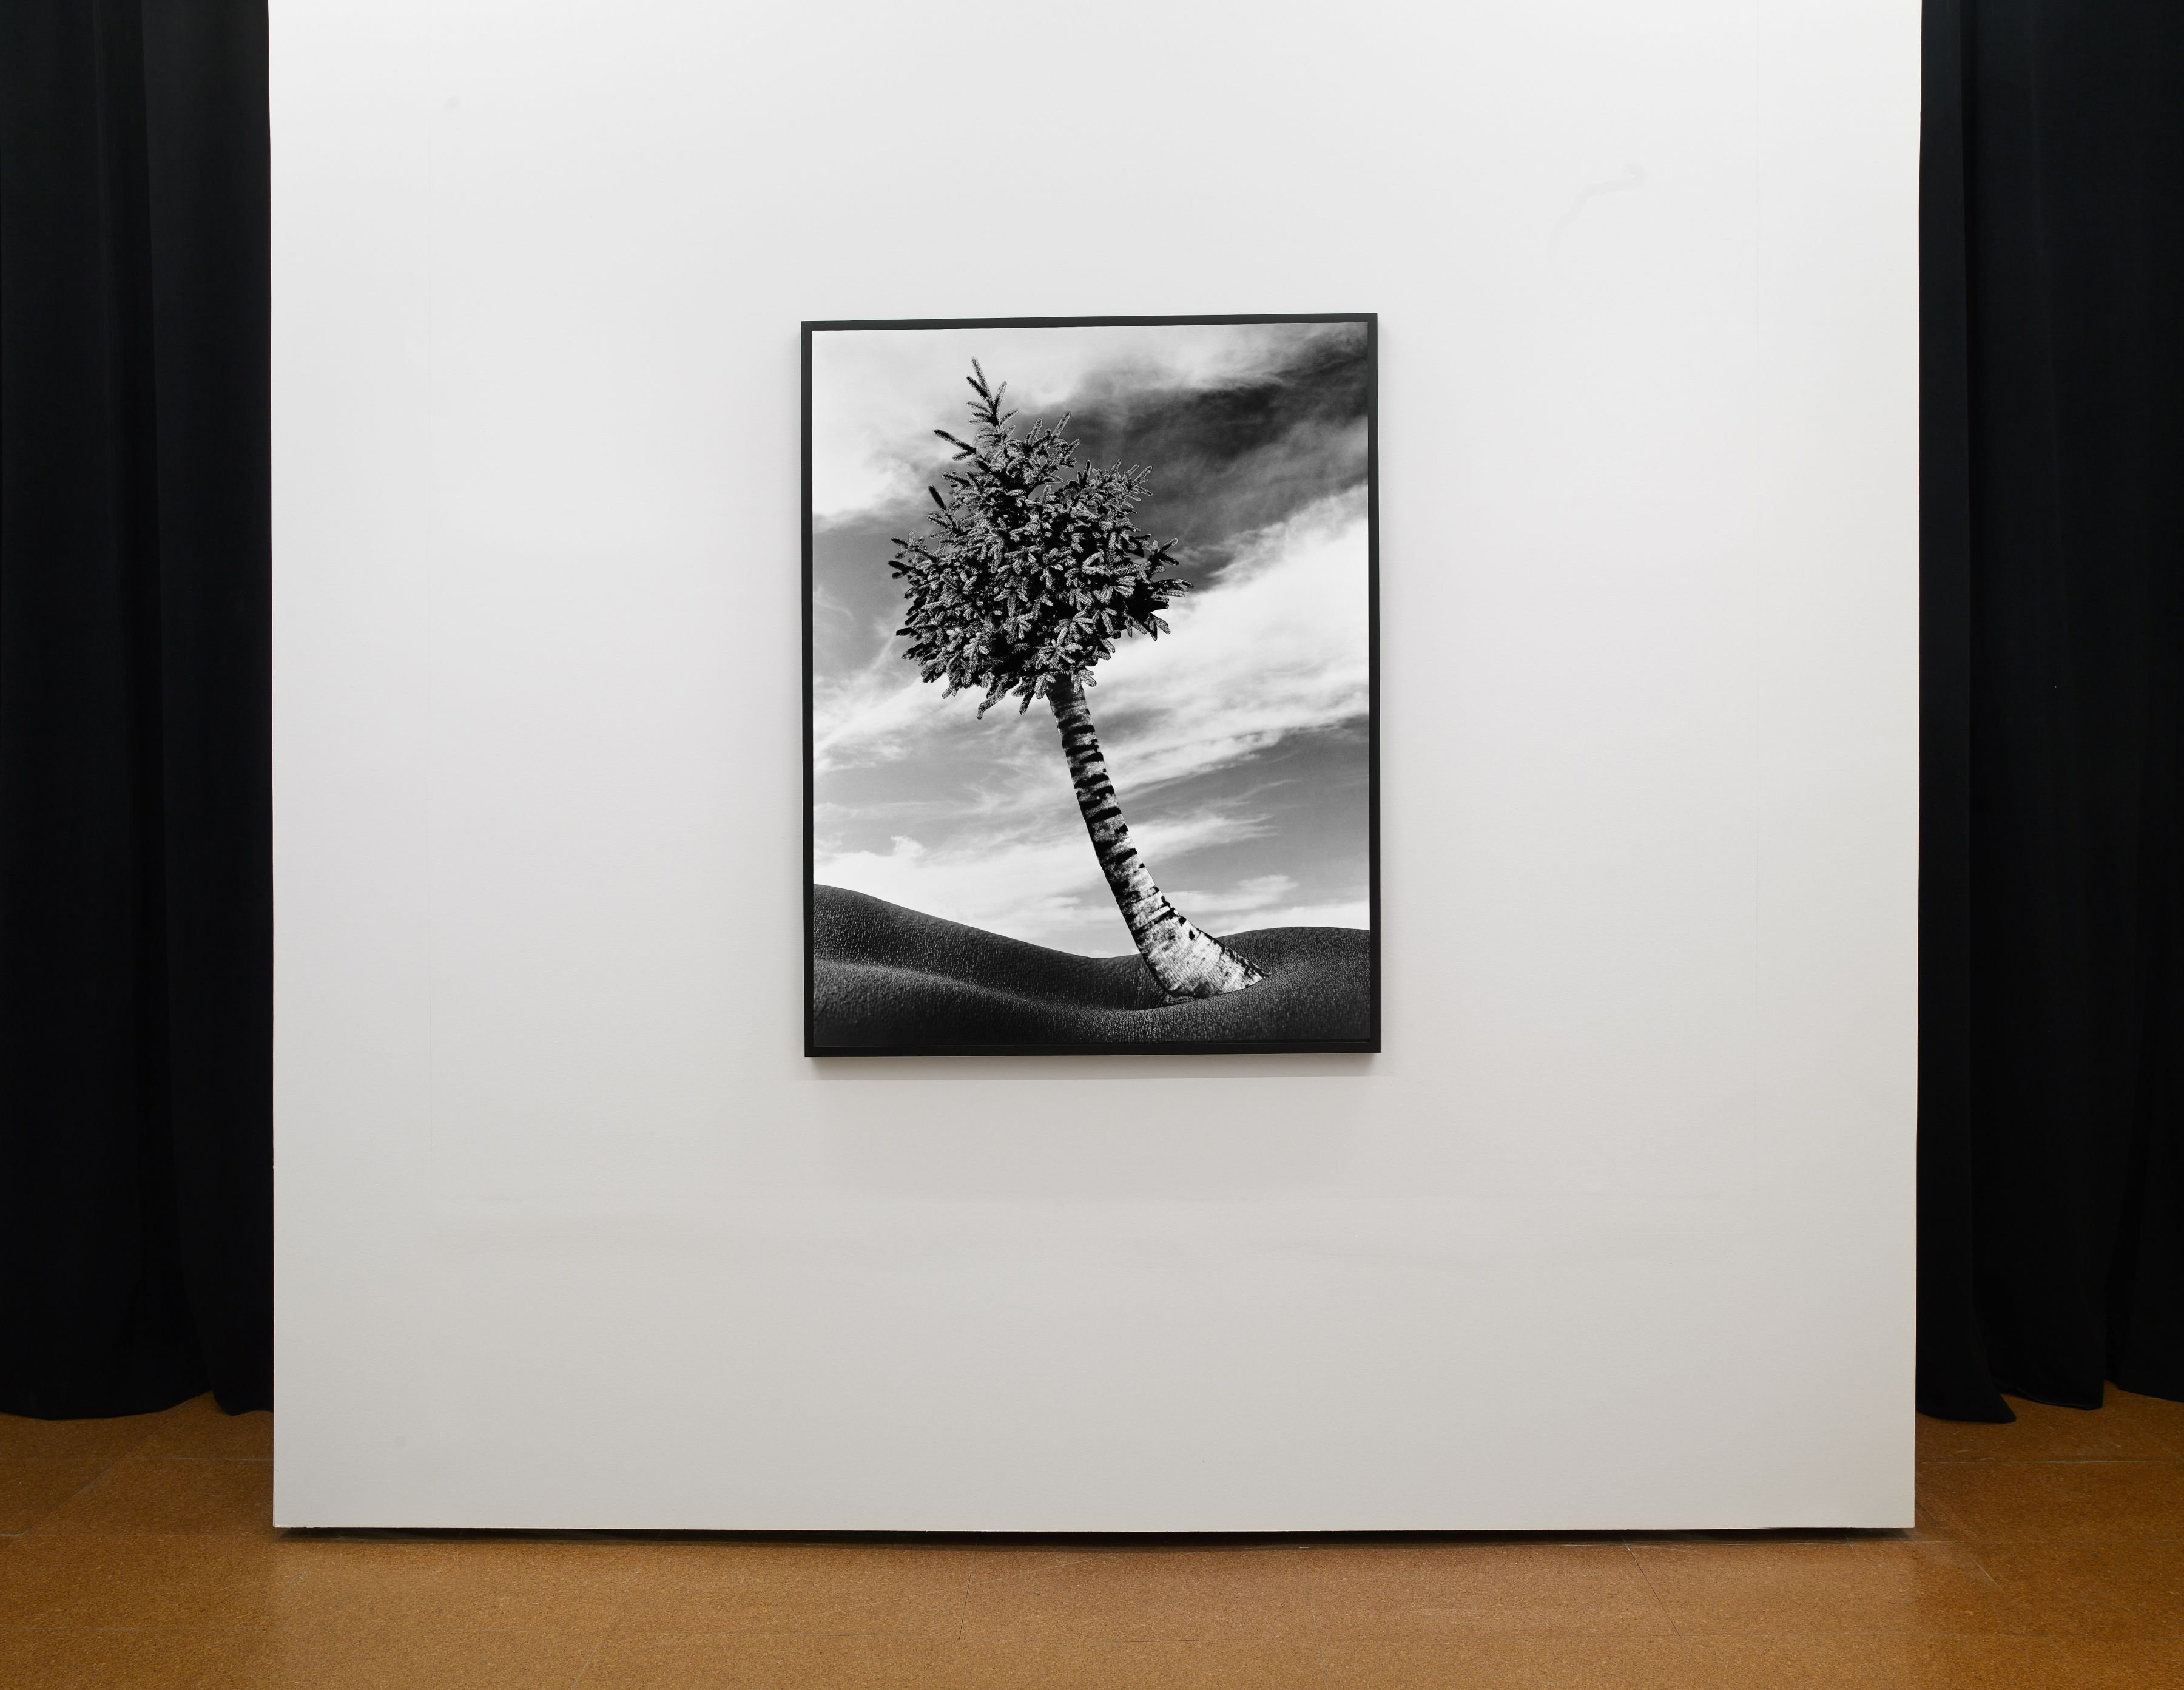 The Fir-Palm, 1991/2012 Lorraine O'Grady: New Worlds, Installation view, Alexander Gray Associates, 2012